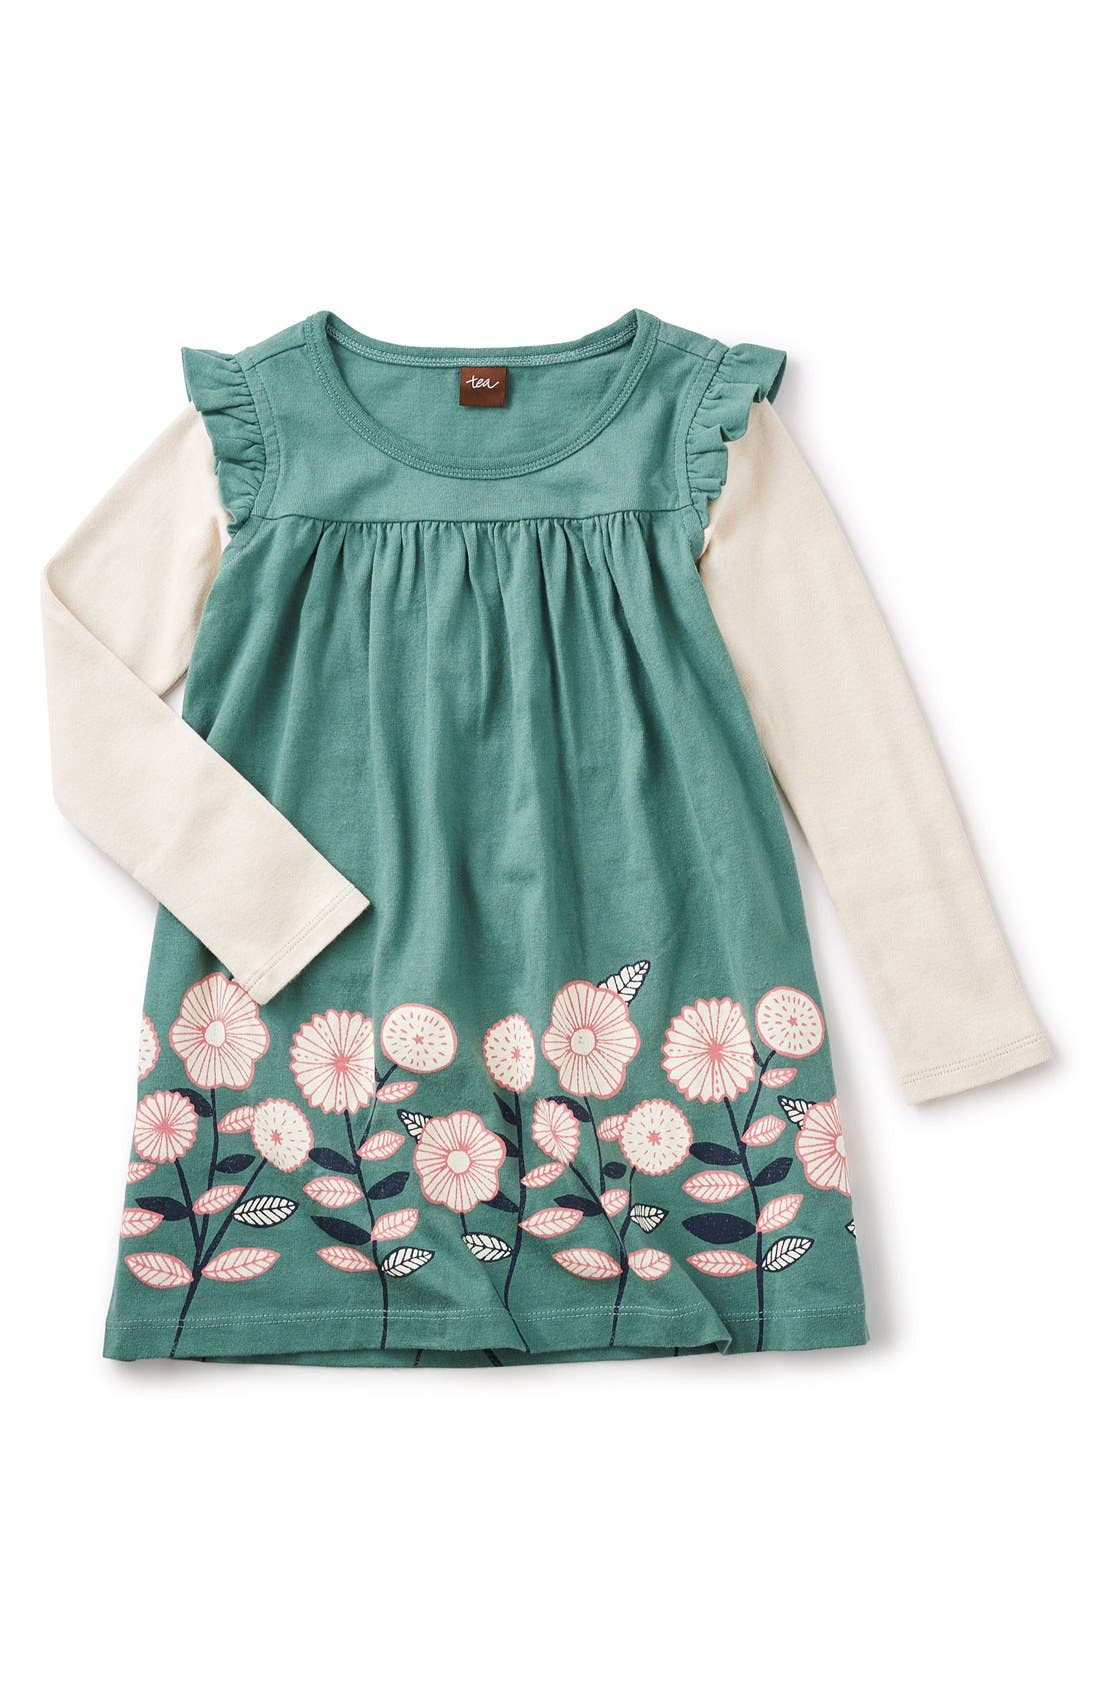 Main Image - Tea Collection 'Midori - Double Decker' Layered Dress (Toddler Girls, Little Girls & Big Girls)